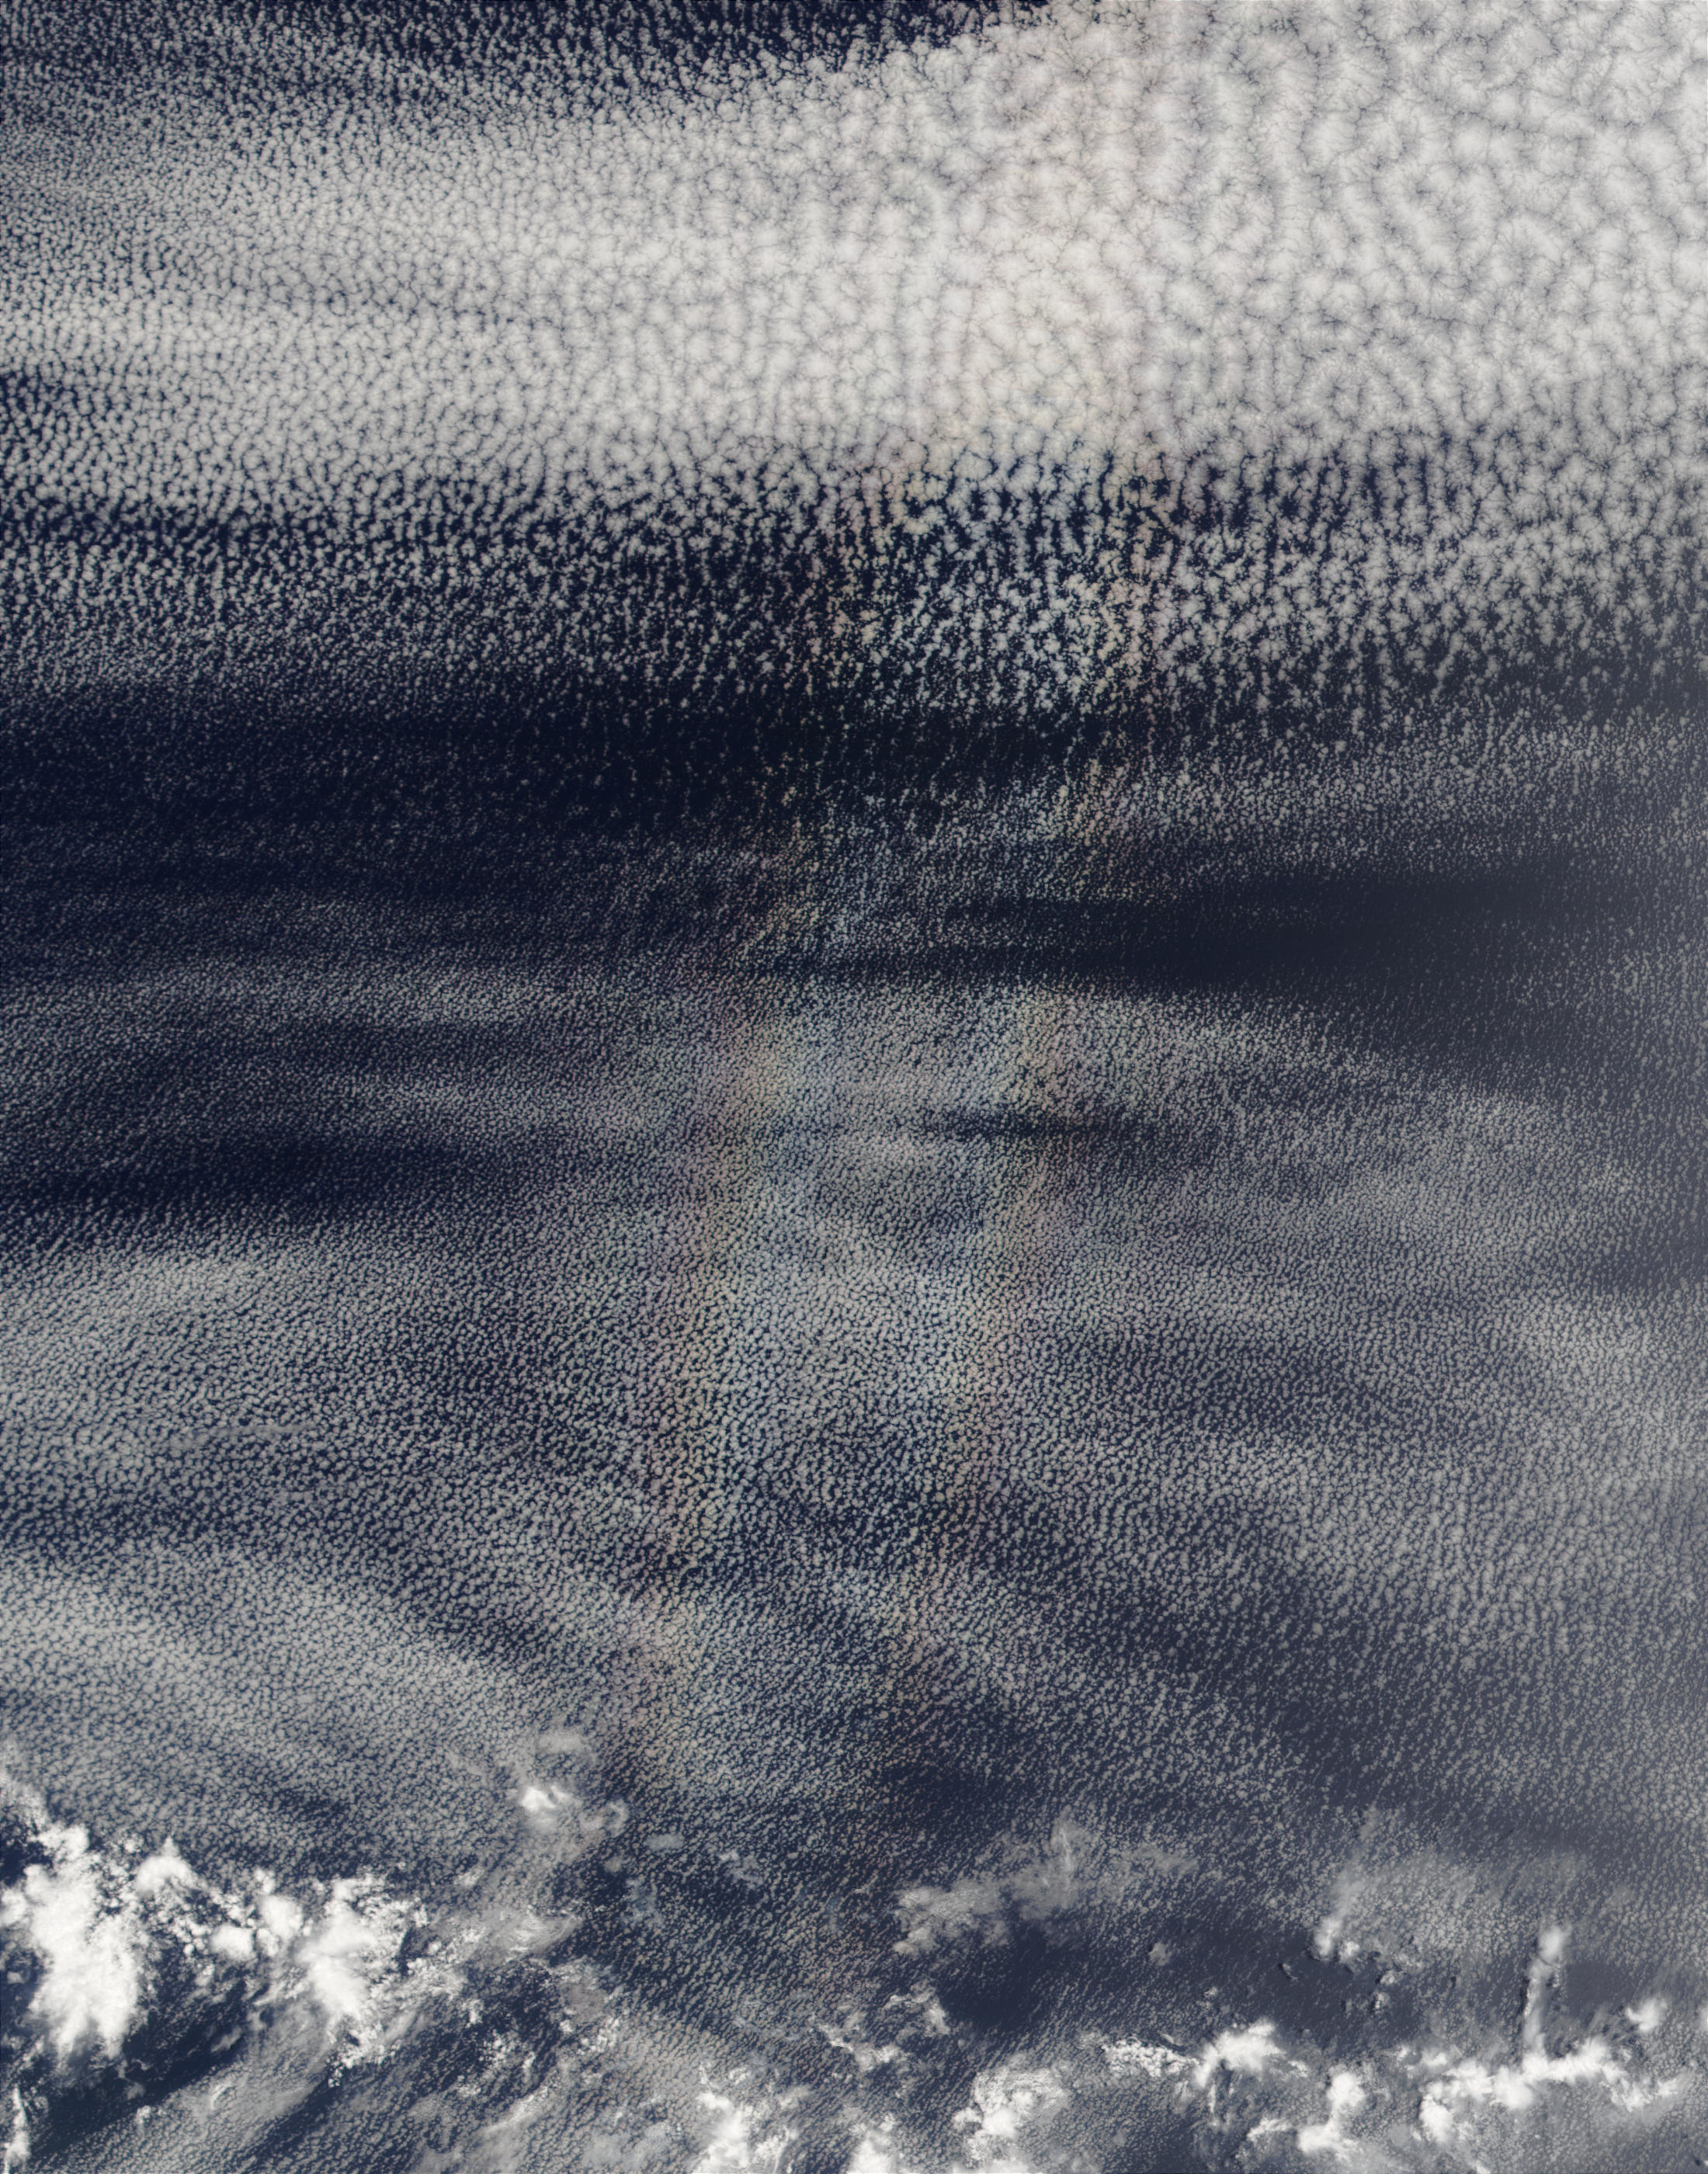 Glory over stratocumulus clouds in Pacific Ocean